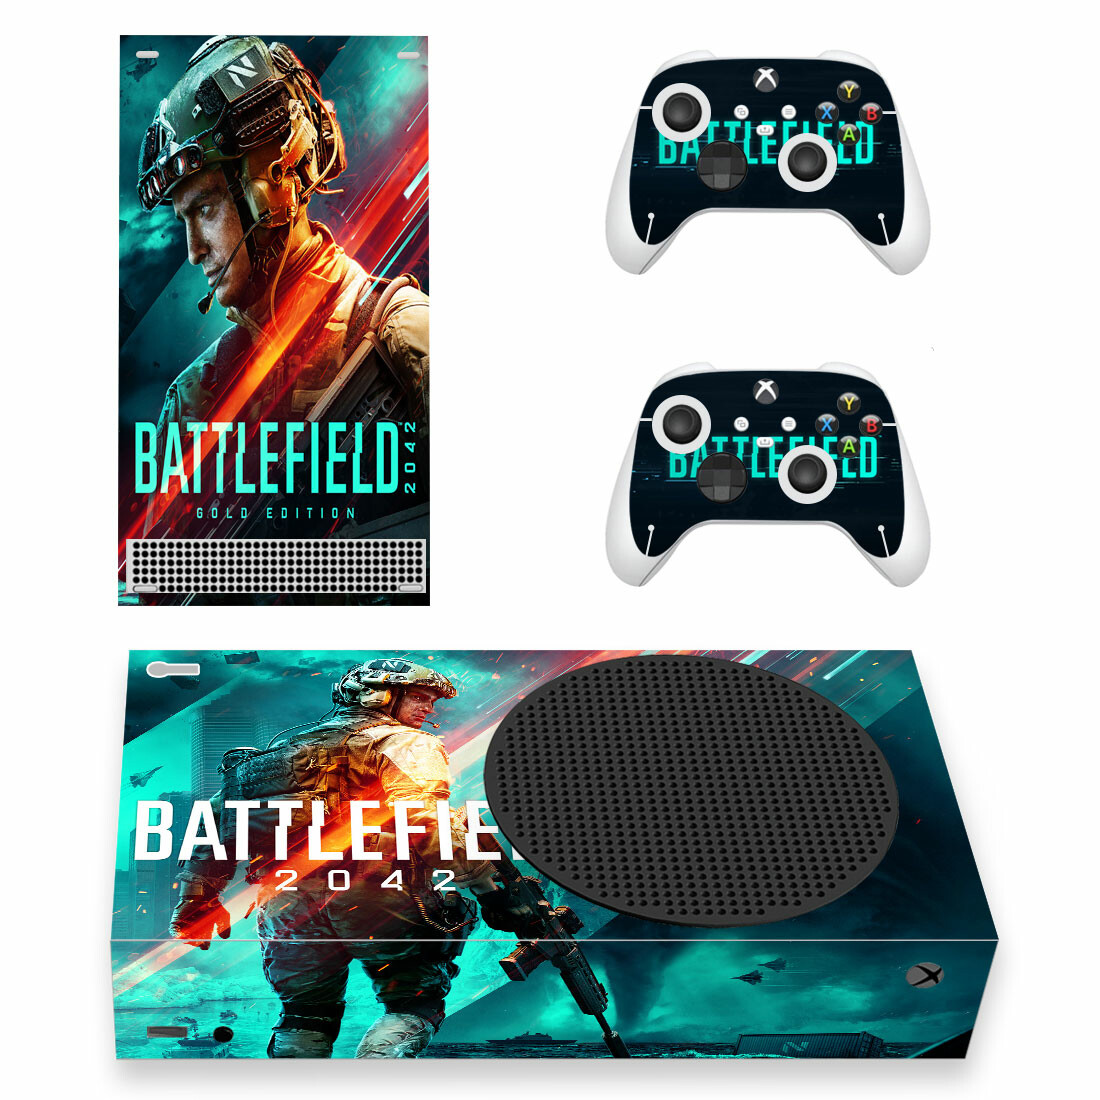 Battlefield 2042 Skin Sticker For Xbox Series S And Controllers